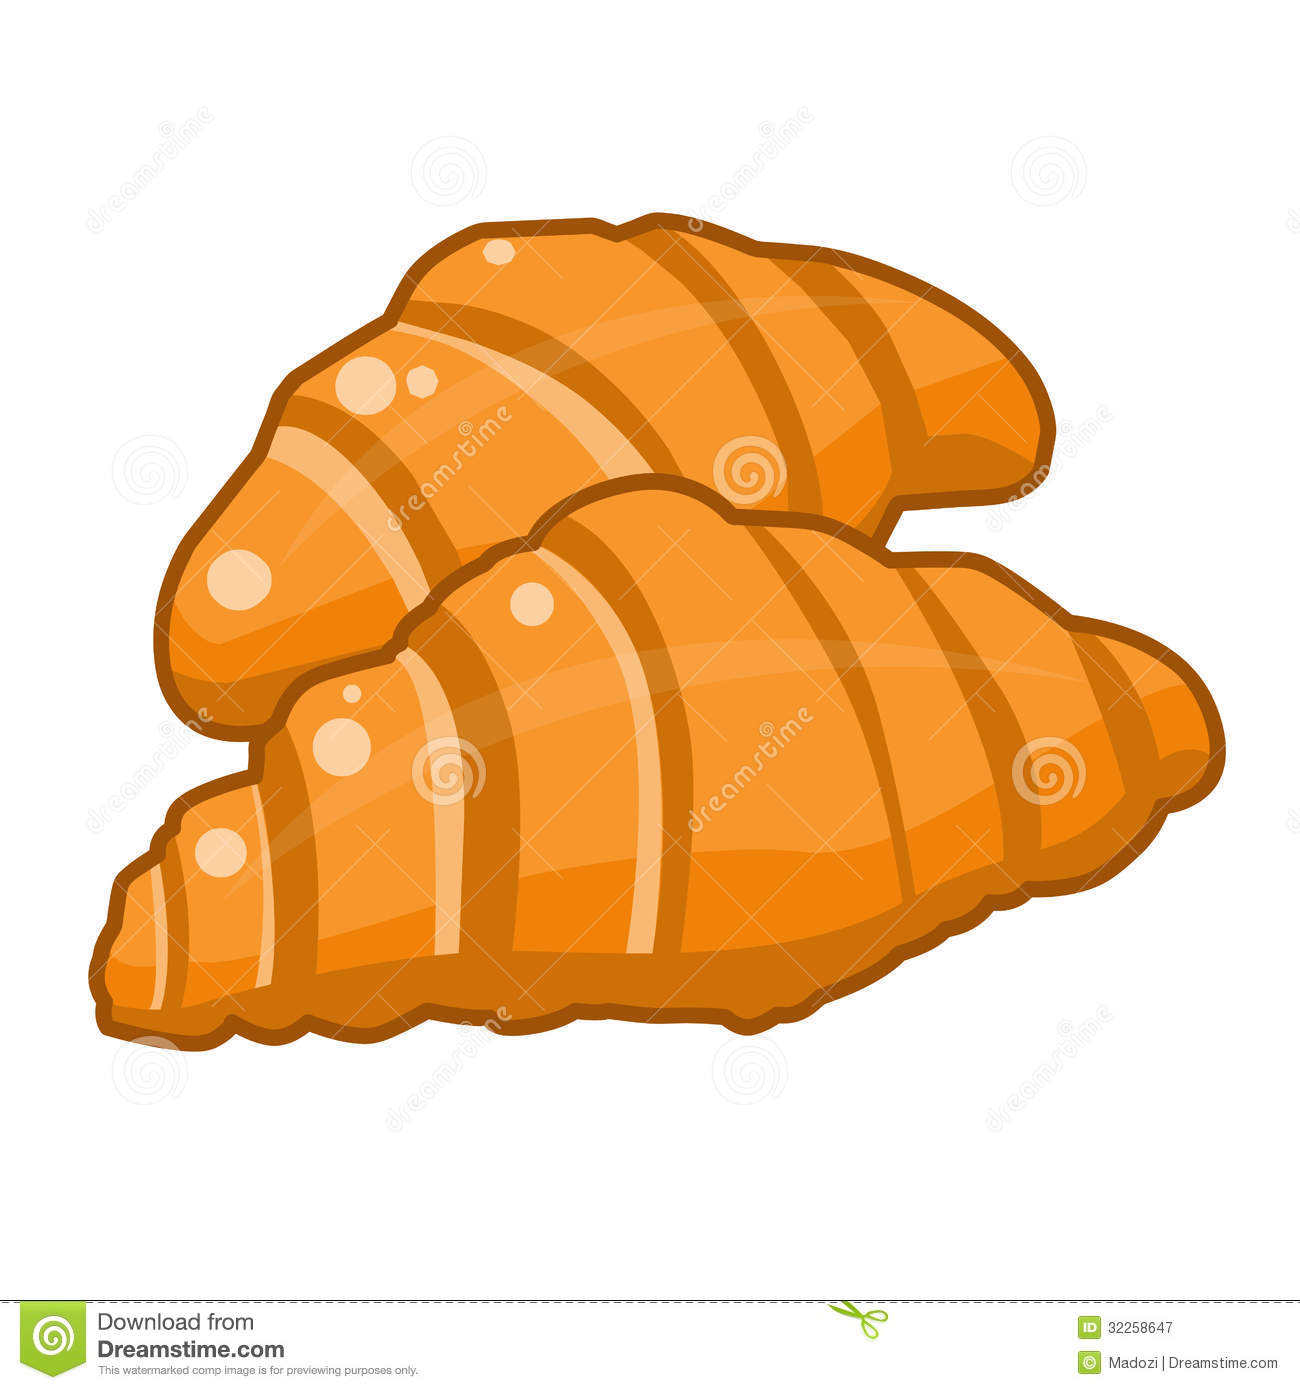 Croissant Clip Art Croissants isolated